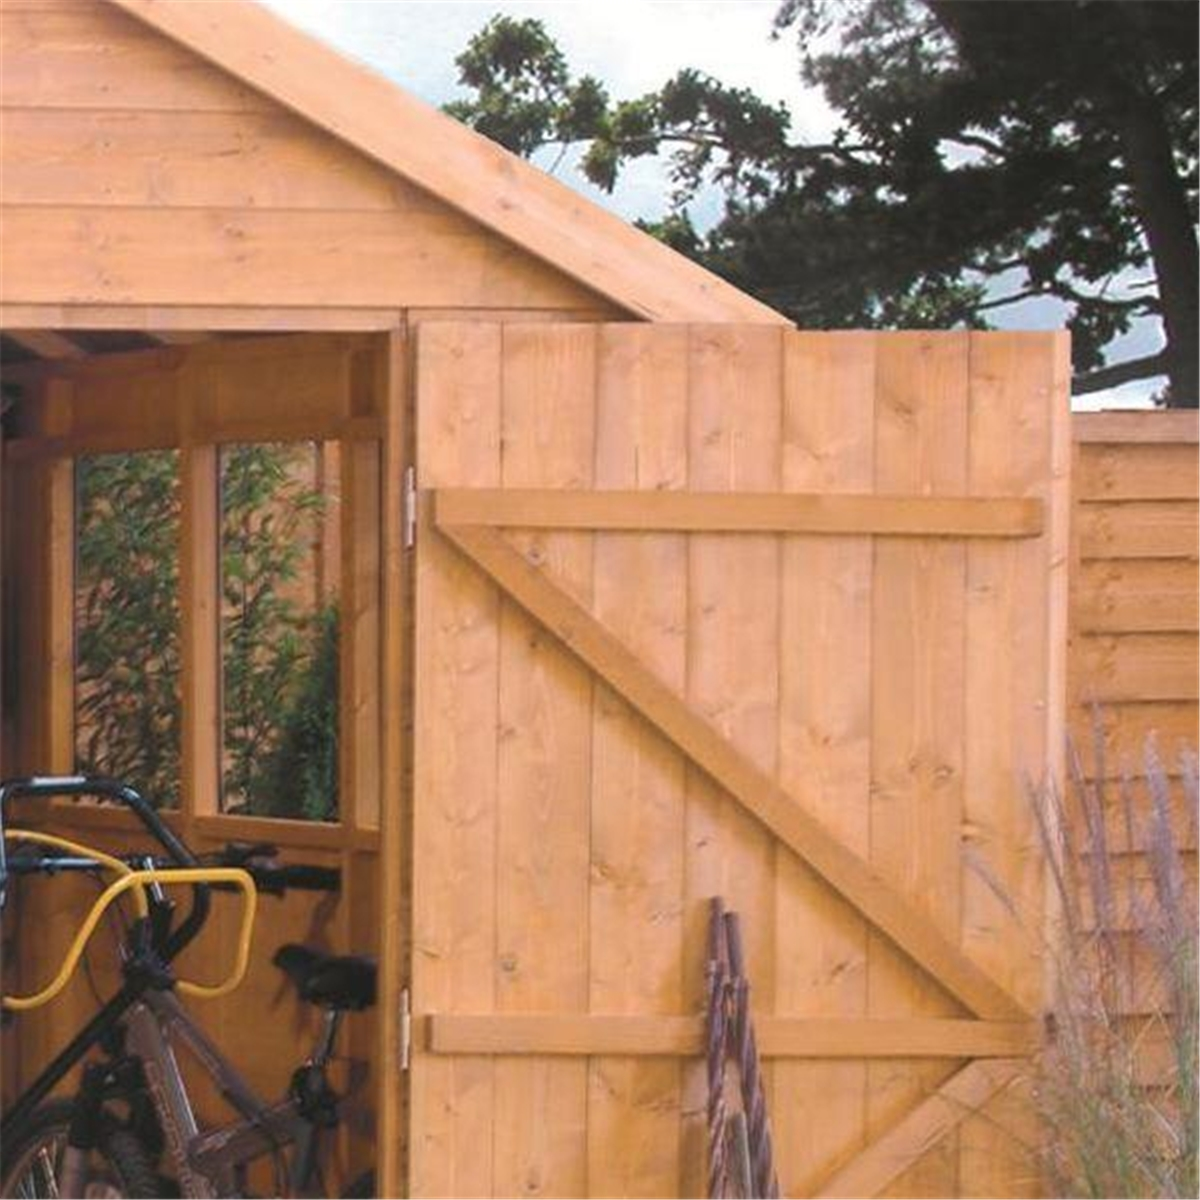 10 x 8 tongue and groove shed 12mm tongue and groove for 10 x 8 metal shed with floor